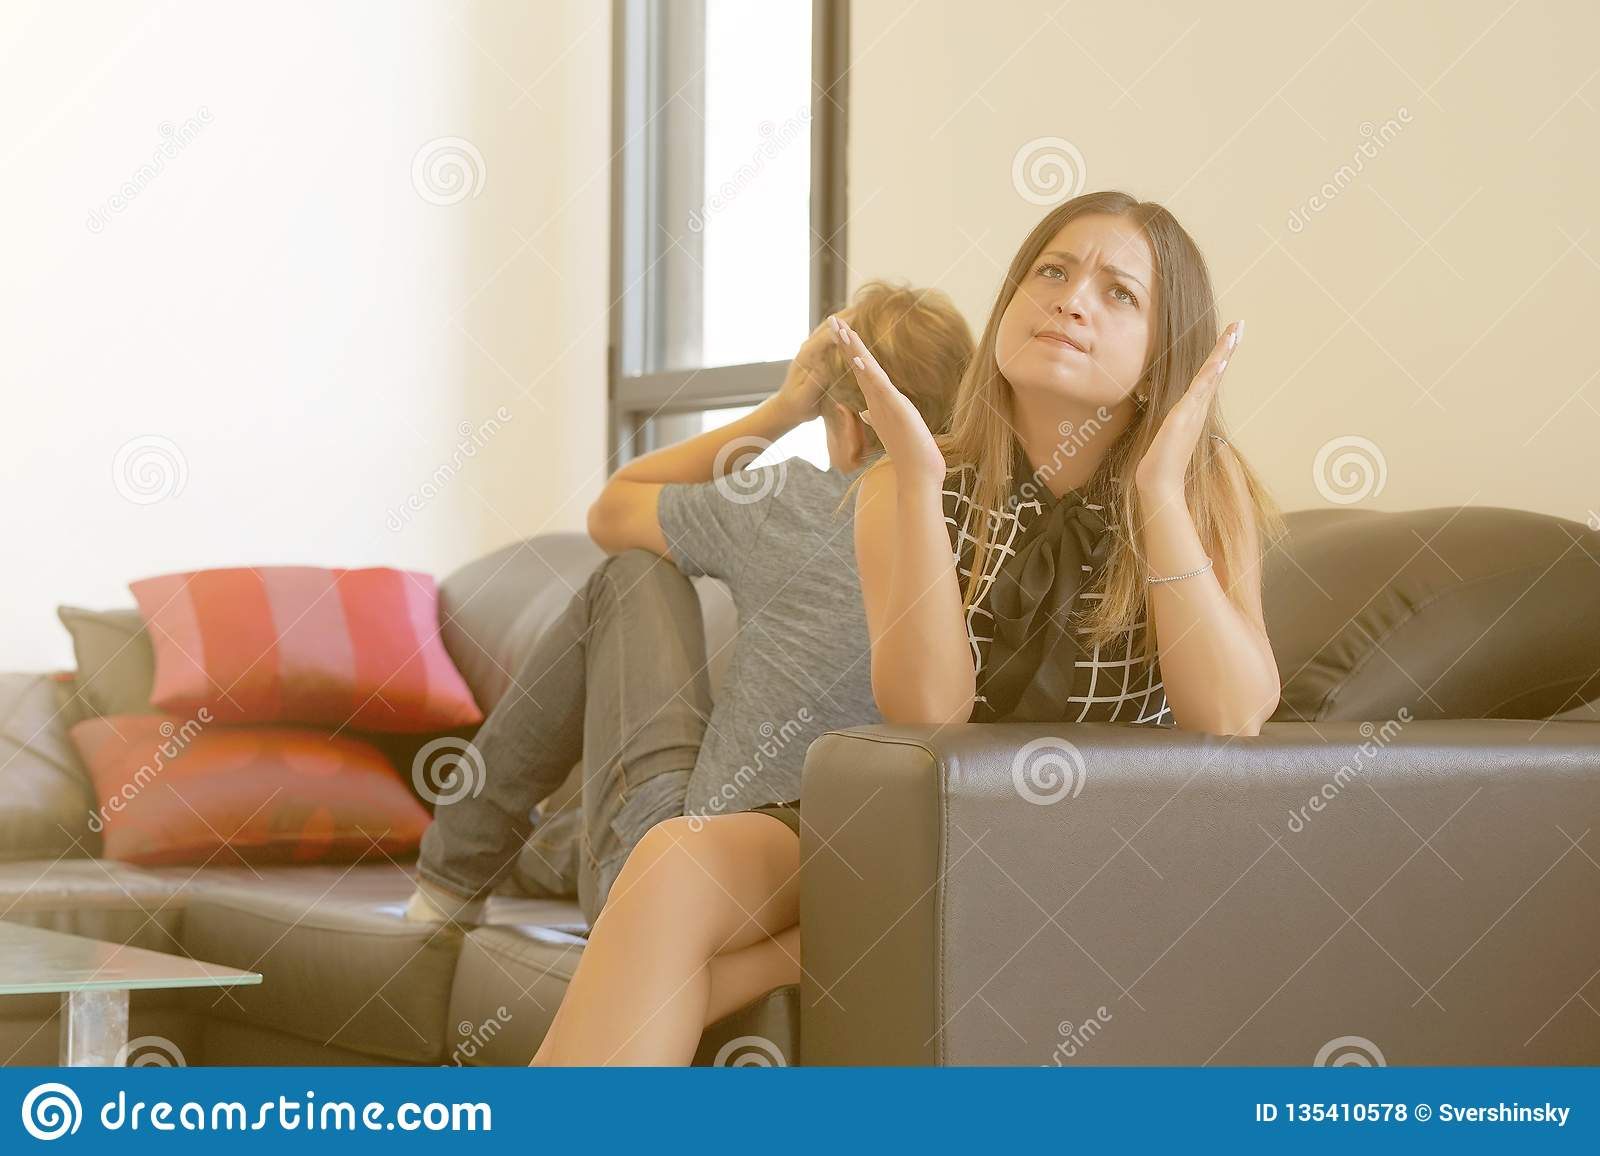 Sad couple after argument or breakup sitting on a sofa in the living room in a house indoor